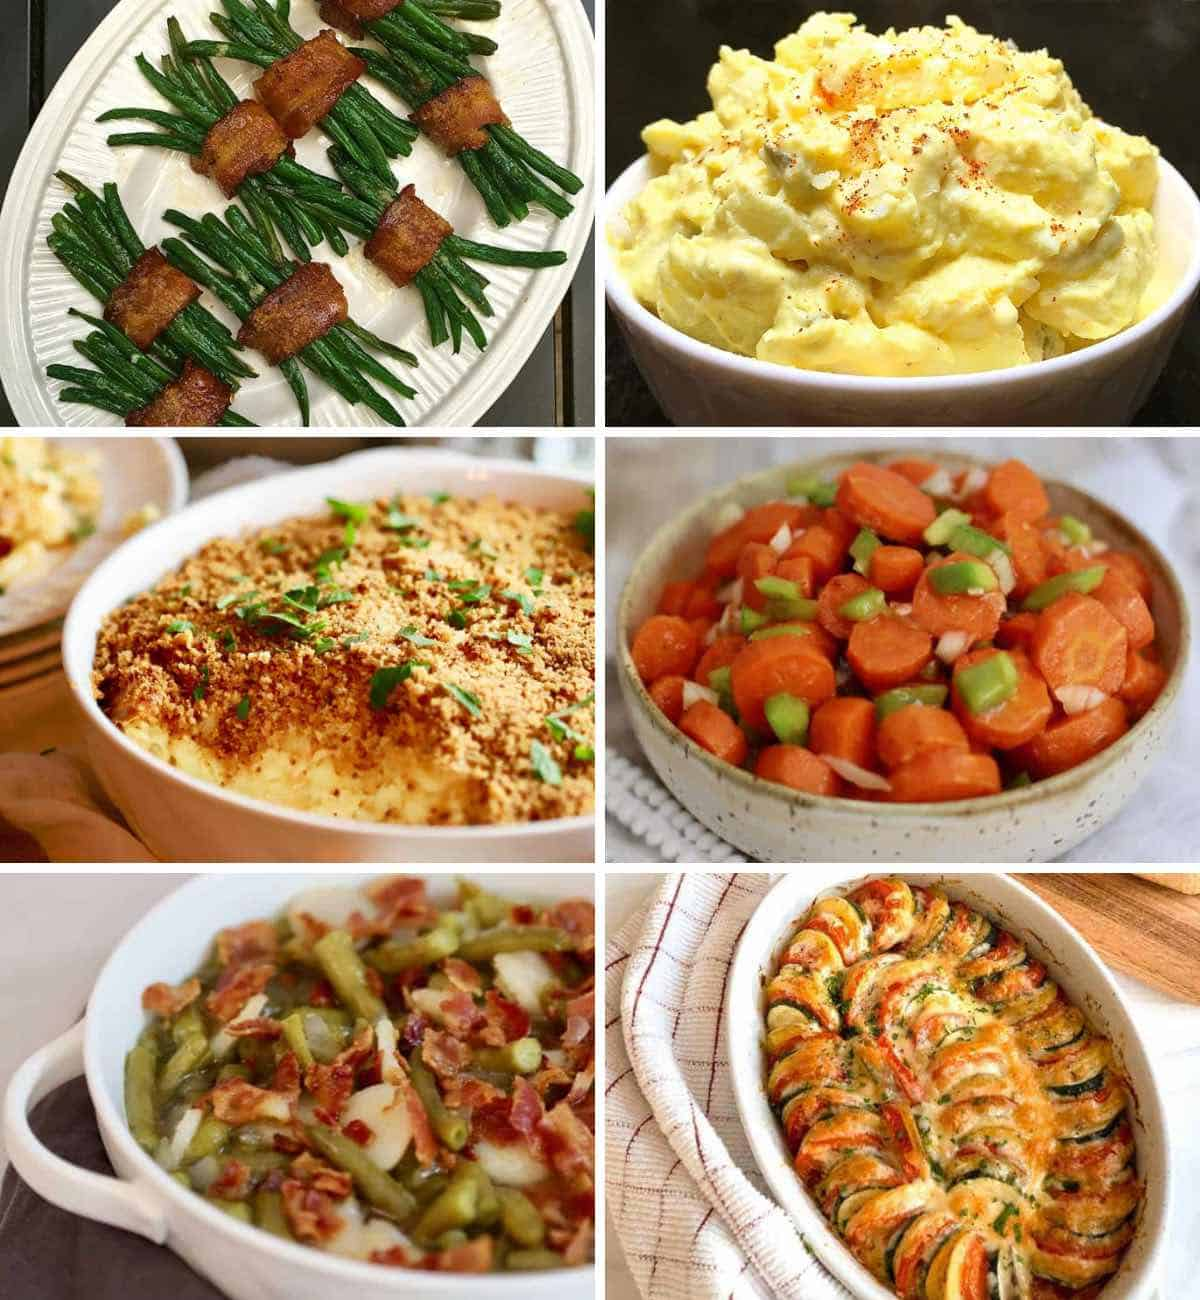 Six pictures of Easter side dishes including potato salad and green beans.